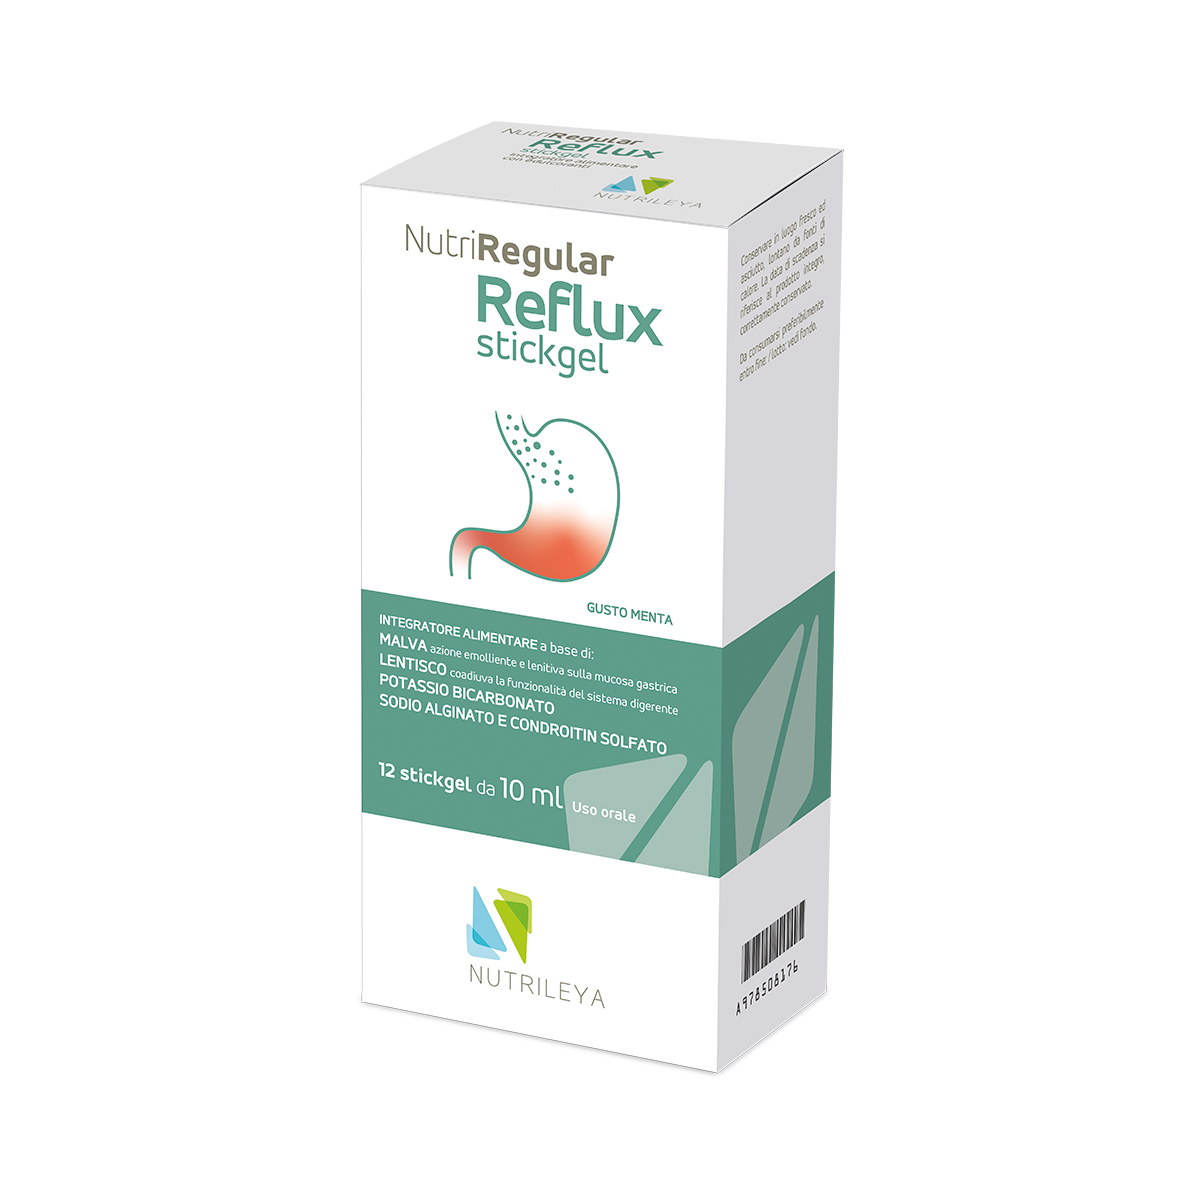 nutriregular reflux stickgel